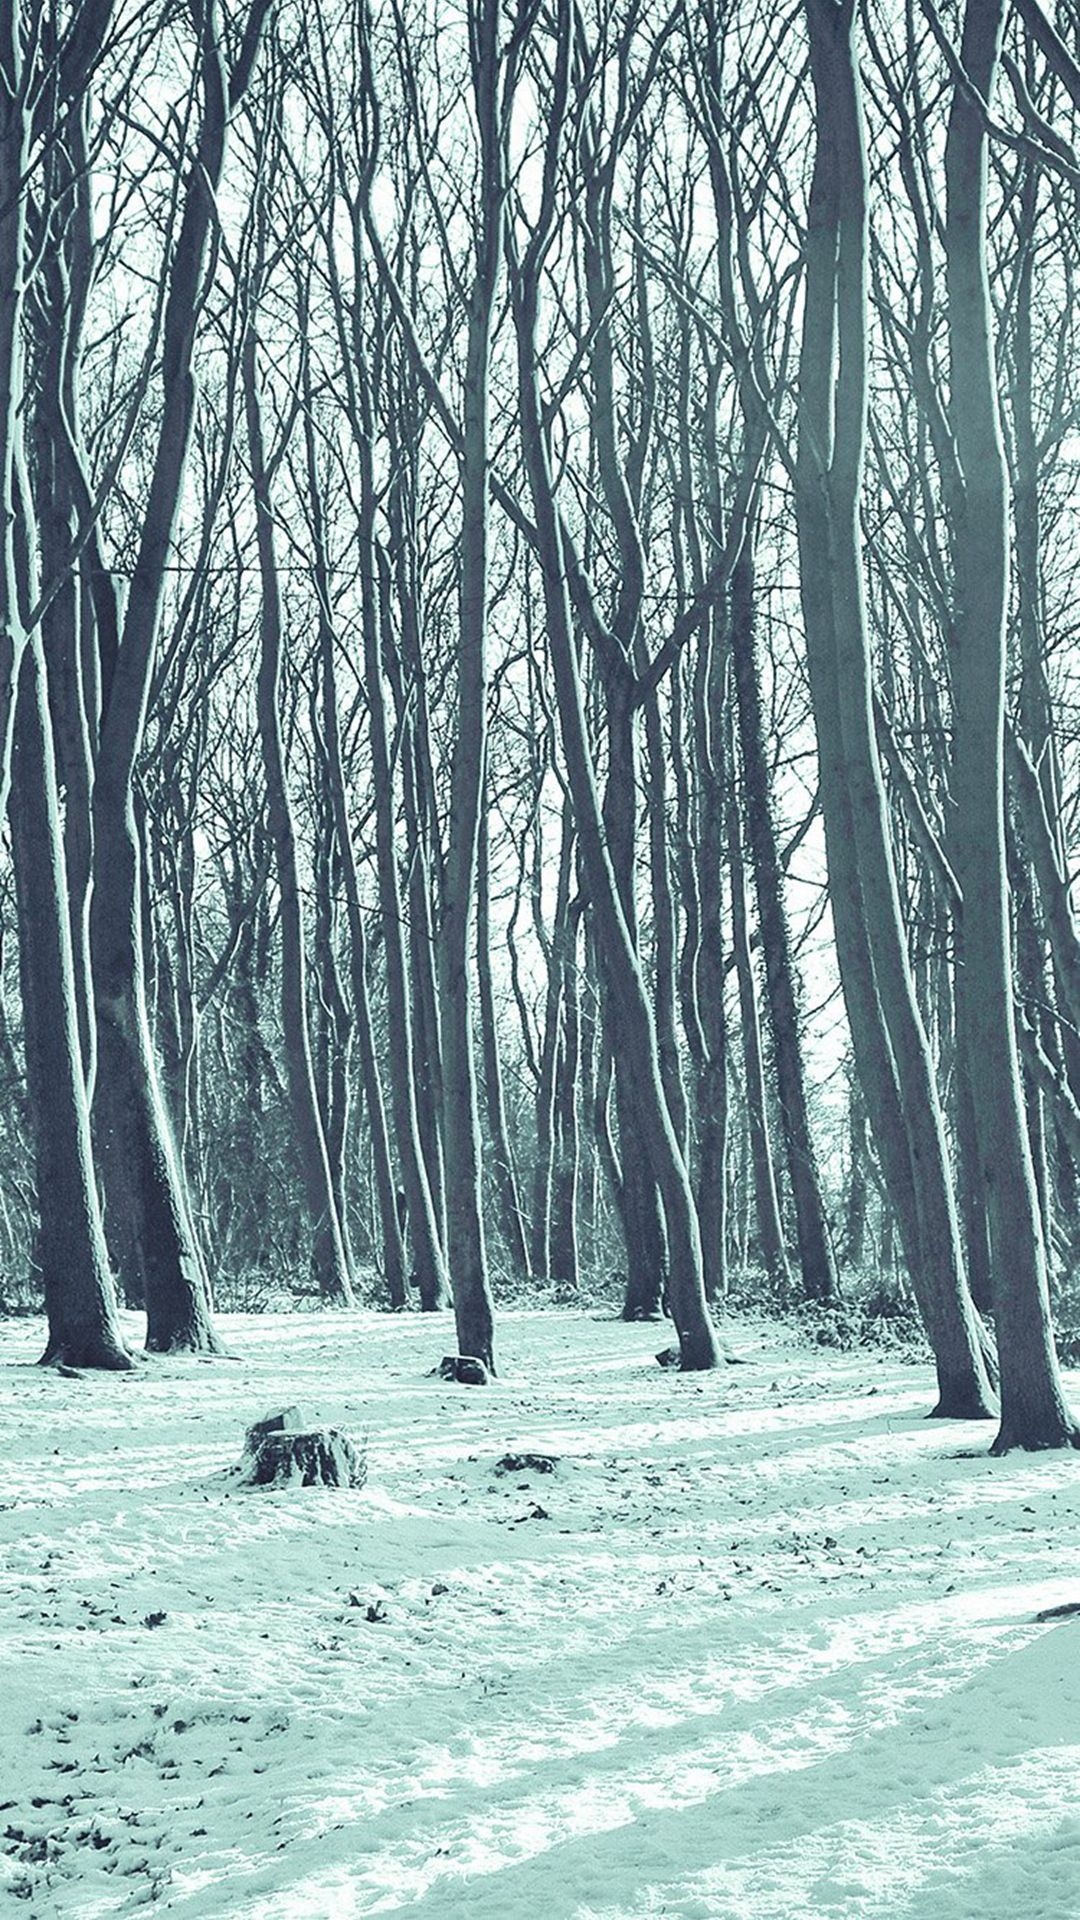 Wallpaper iphone winter - Cold Winter Forest Snow Nature Mountain Blue Iphone 6 Wallpaper